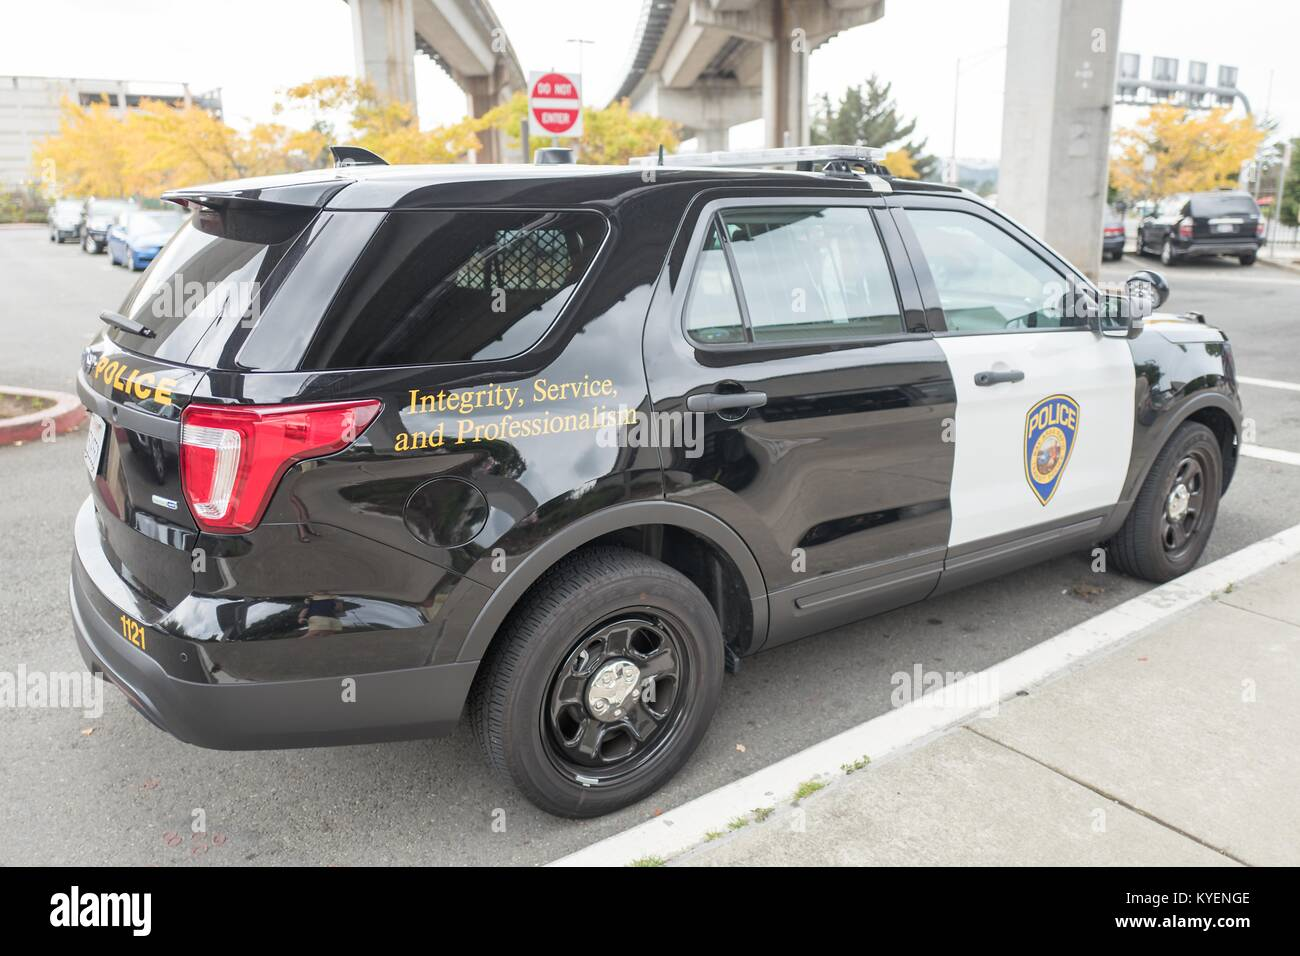 Bay Area Rapid Transit (BART) police vehicle at the Daly City BART station in the San Francisco Bay Area town of - Stock Image